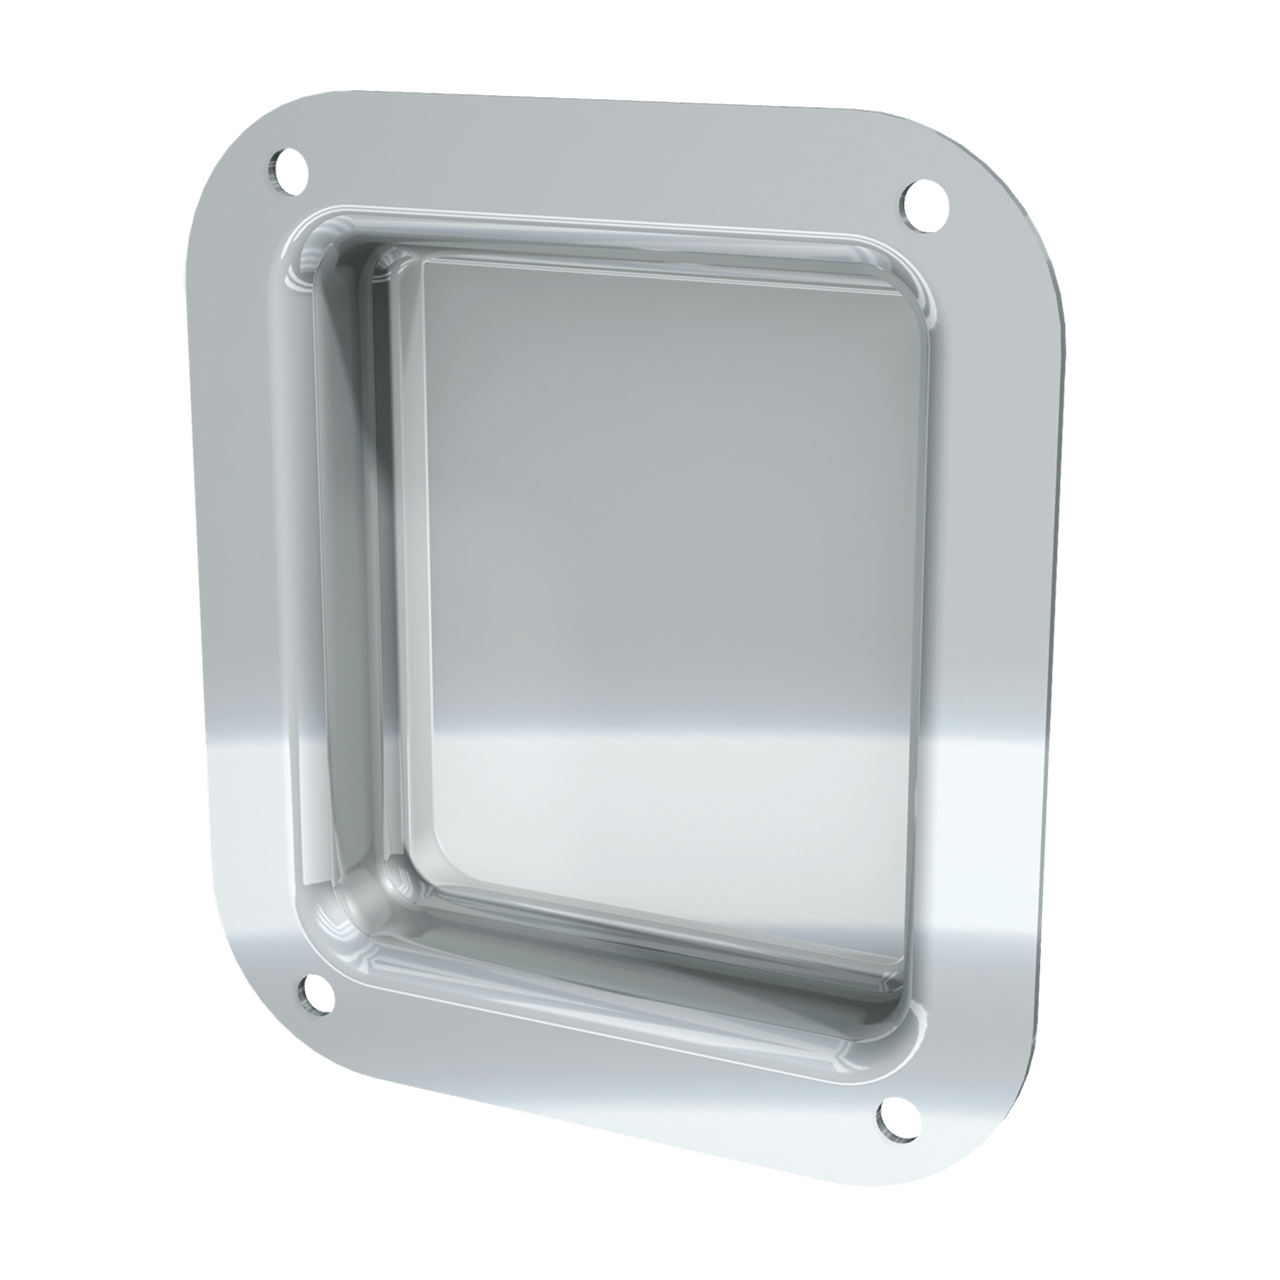 "4 x 4-1/2"" Recessed Dish, 3/4 view"